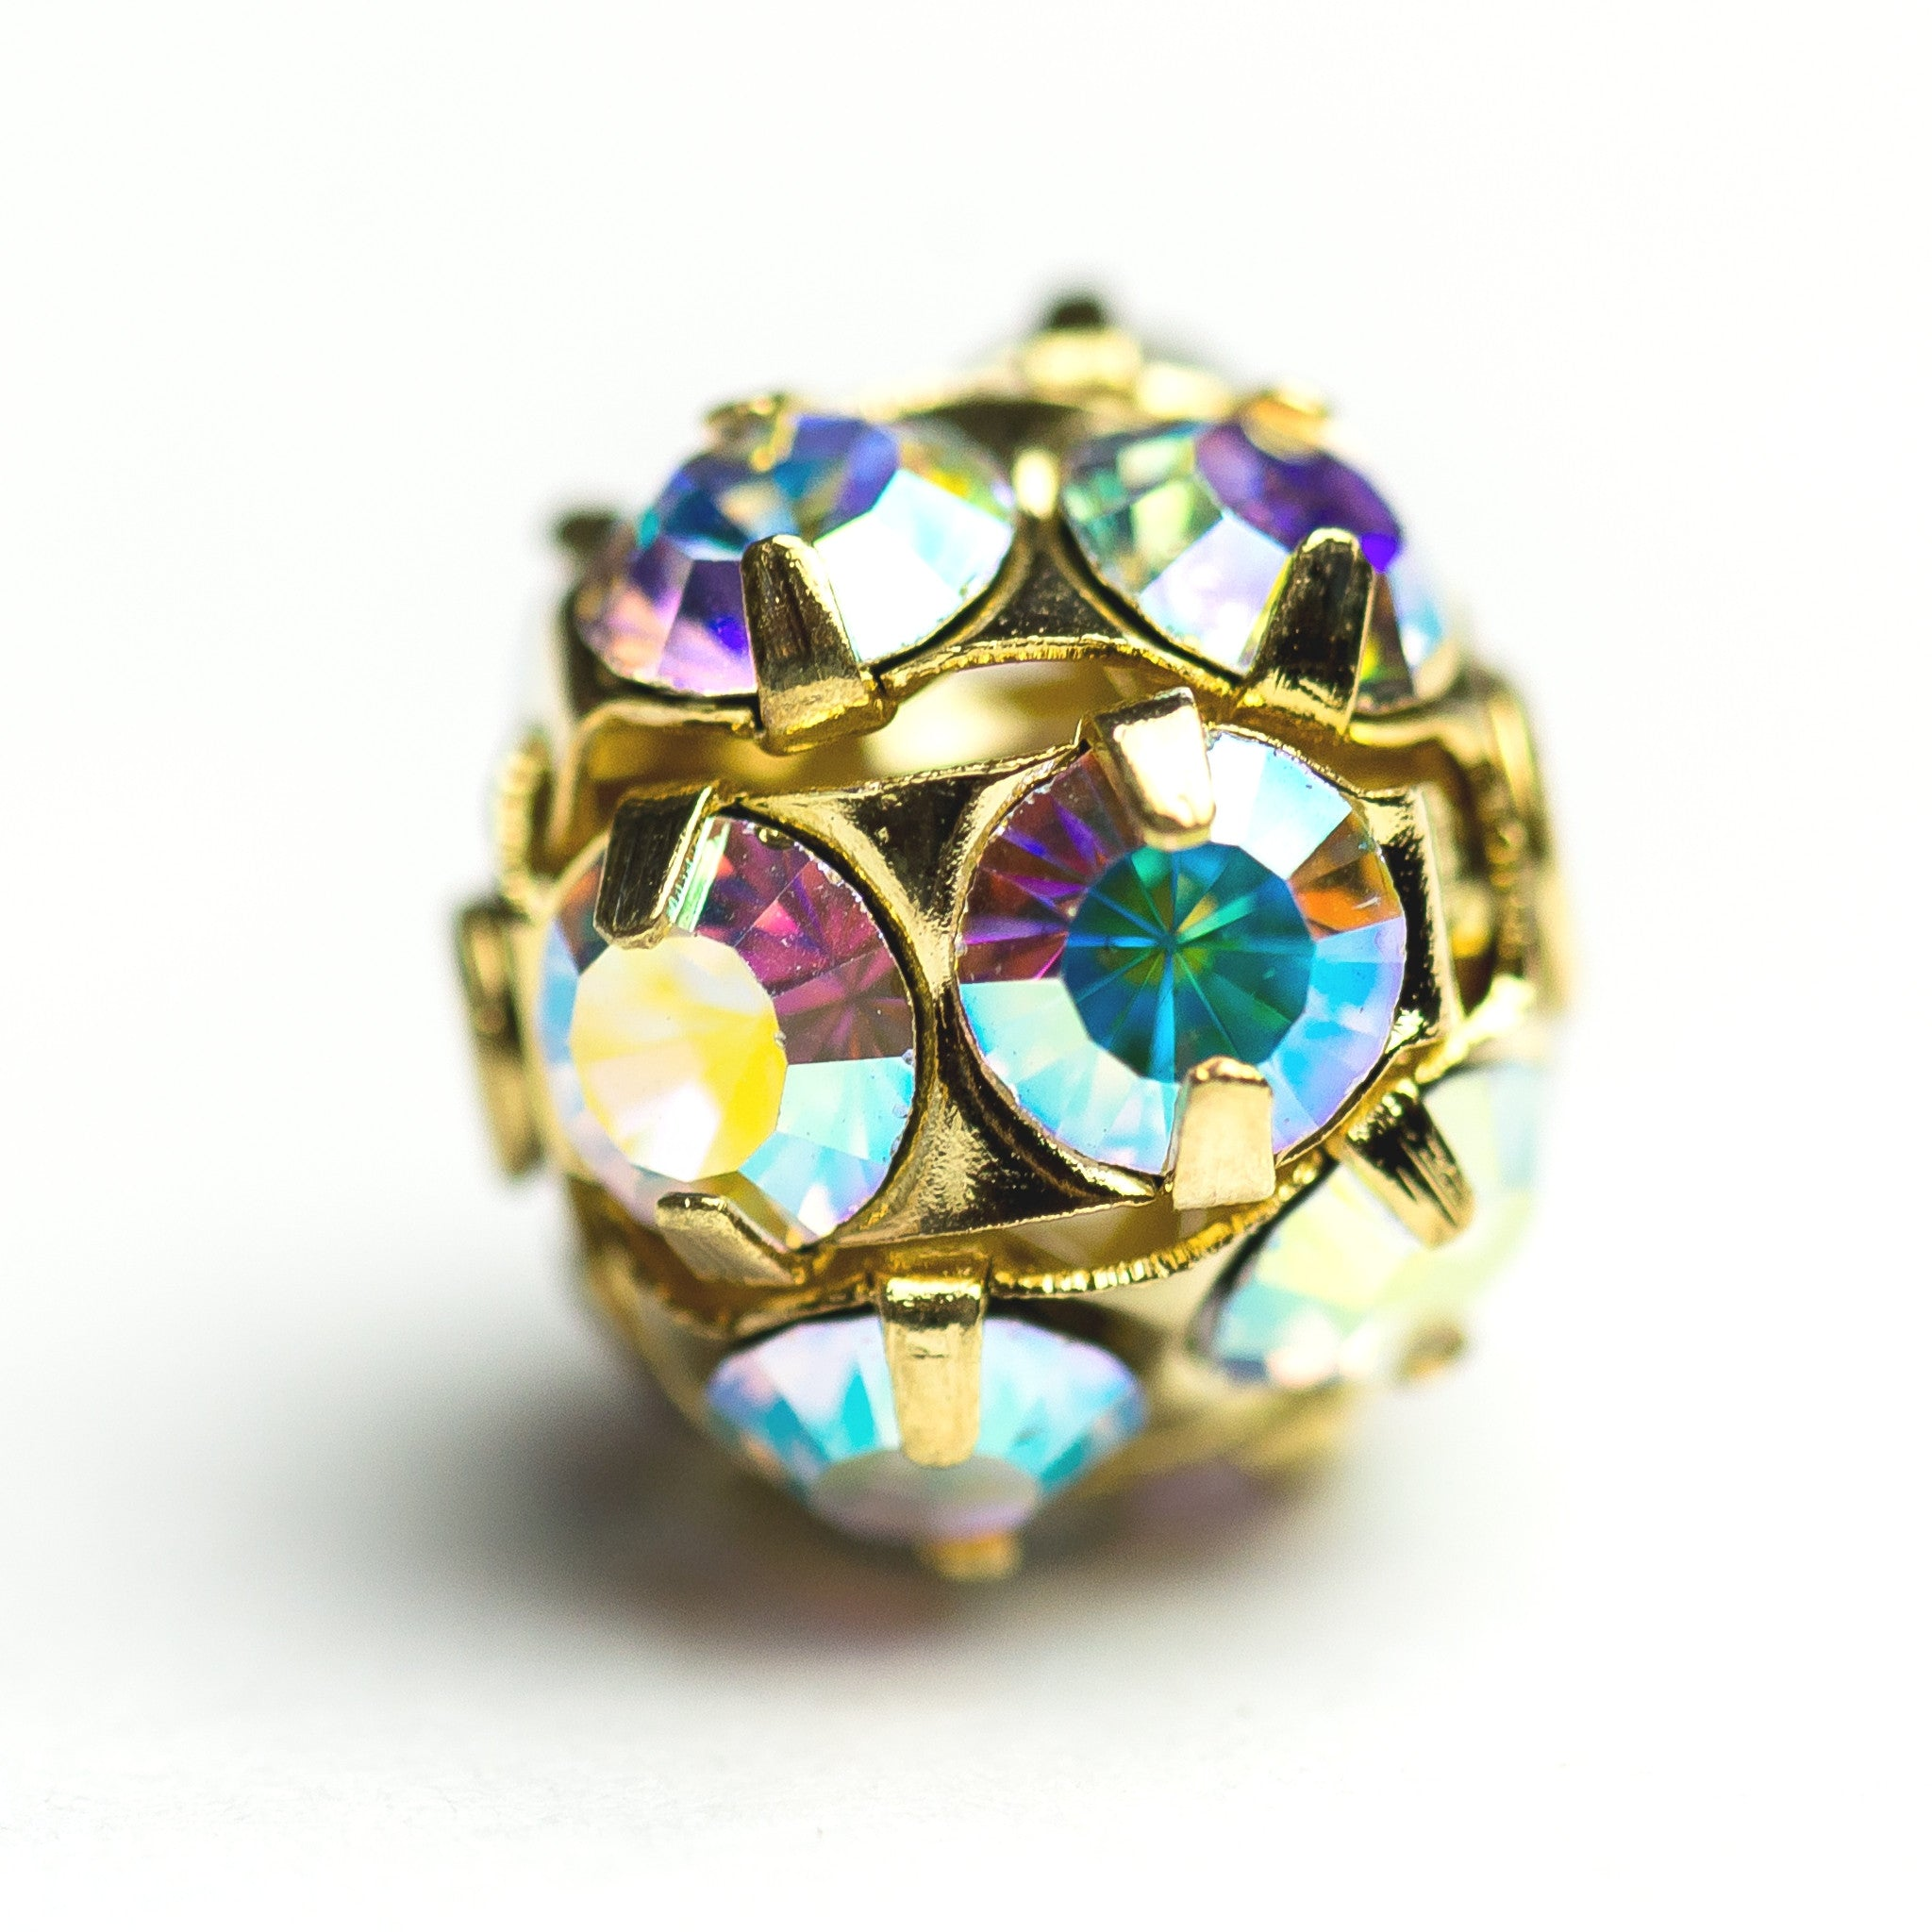 12MM Rhinestone Ball Crystal Ab/Brass (2 pieces)